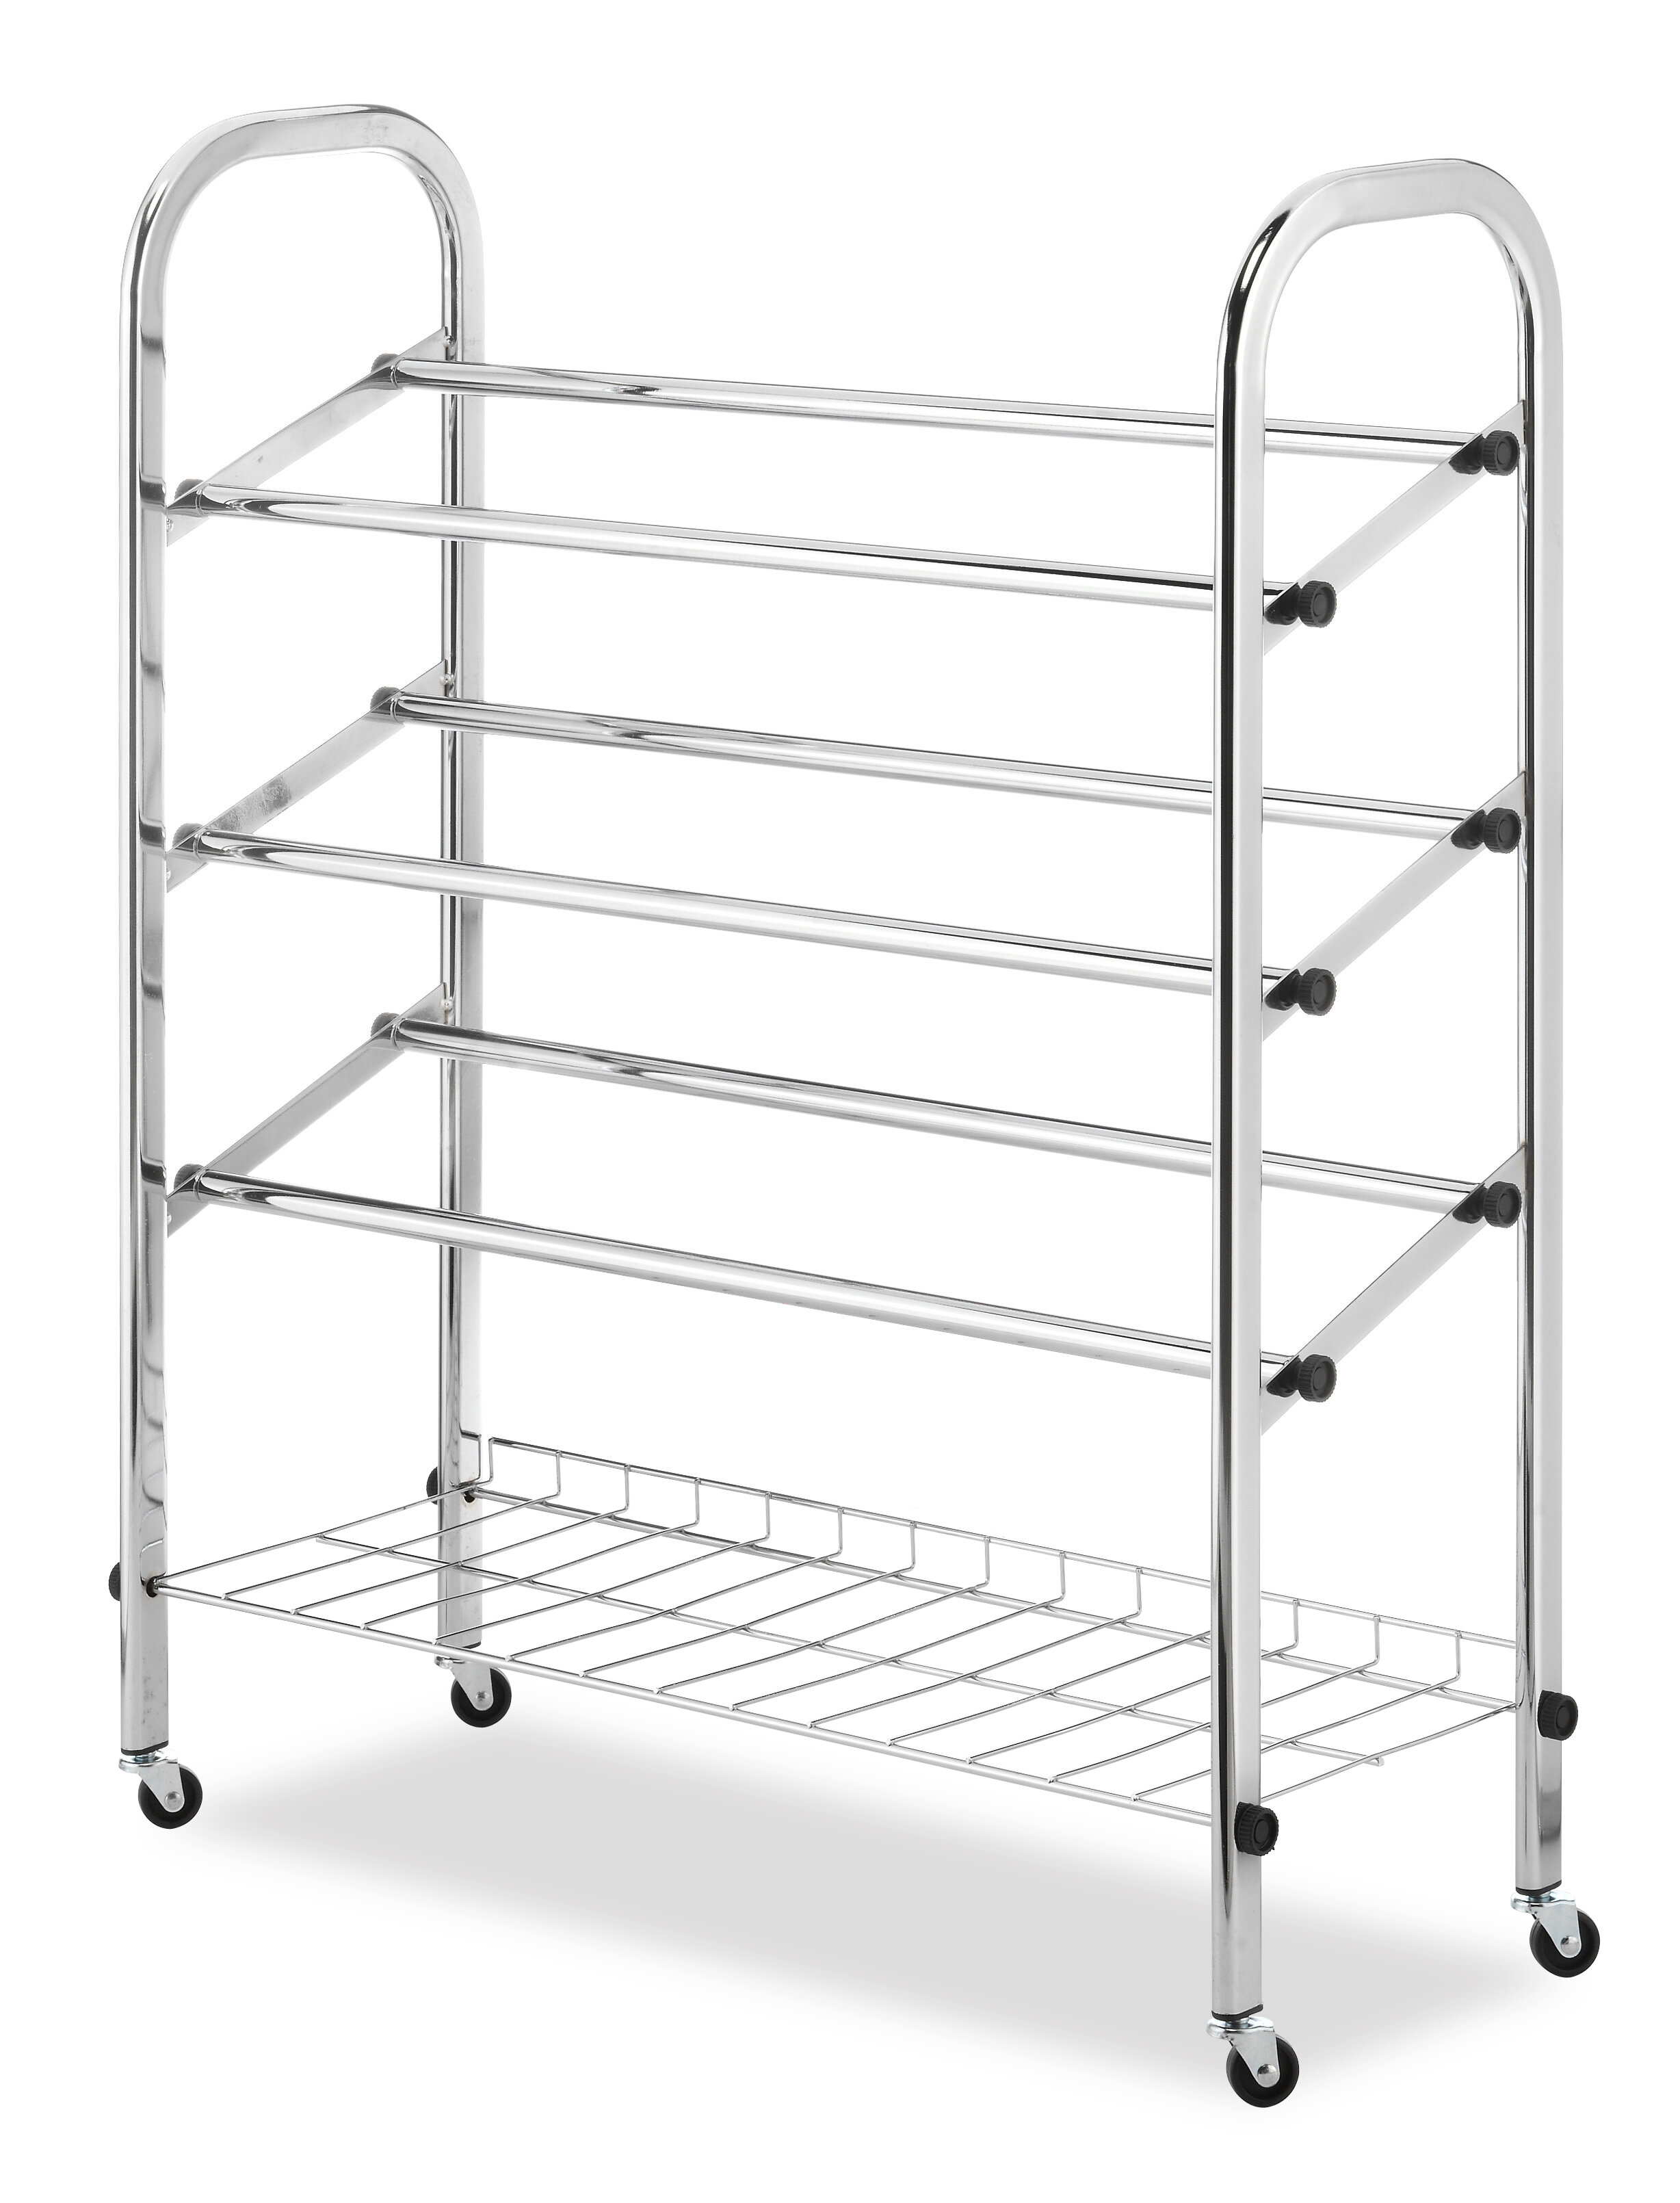 cart wood racks plans amazing size top rolling stainless kitchen on full wheels metal steel shelf fabulous metalh amusing rack inspirations image of design